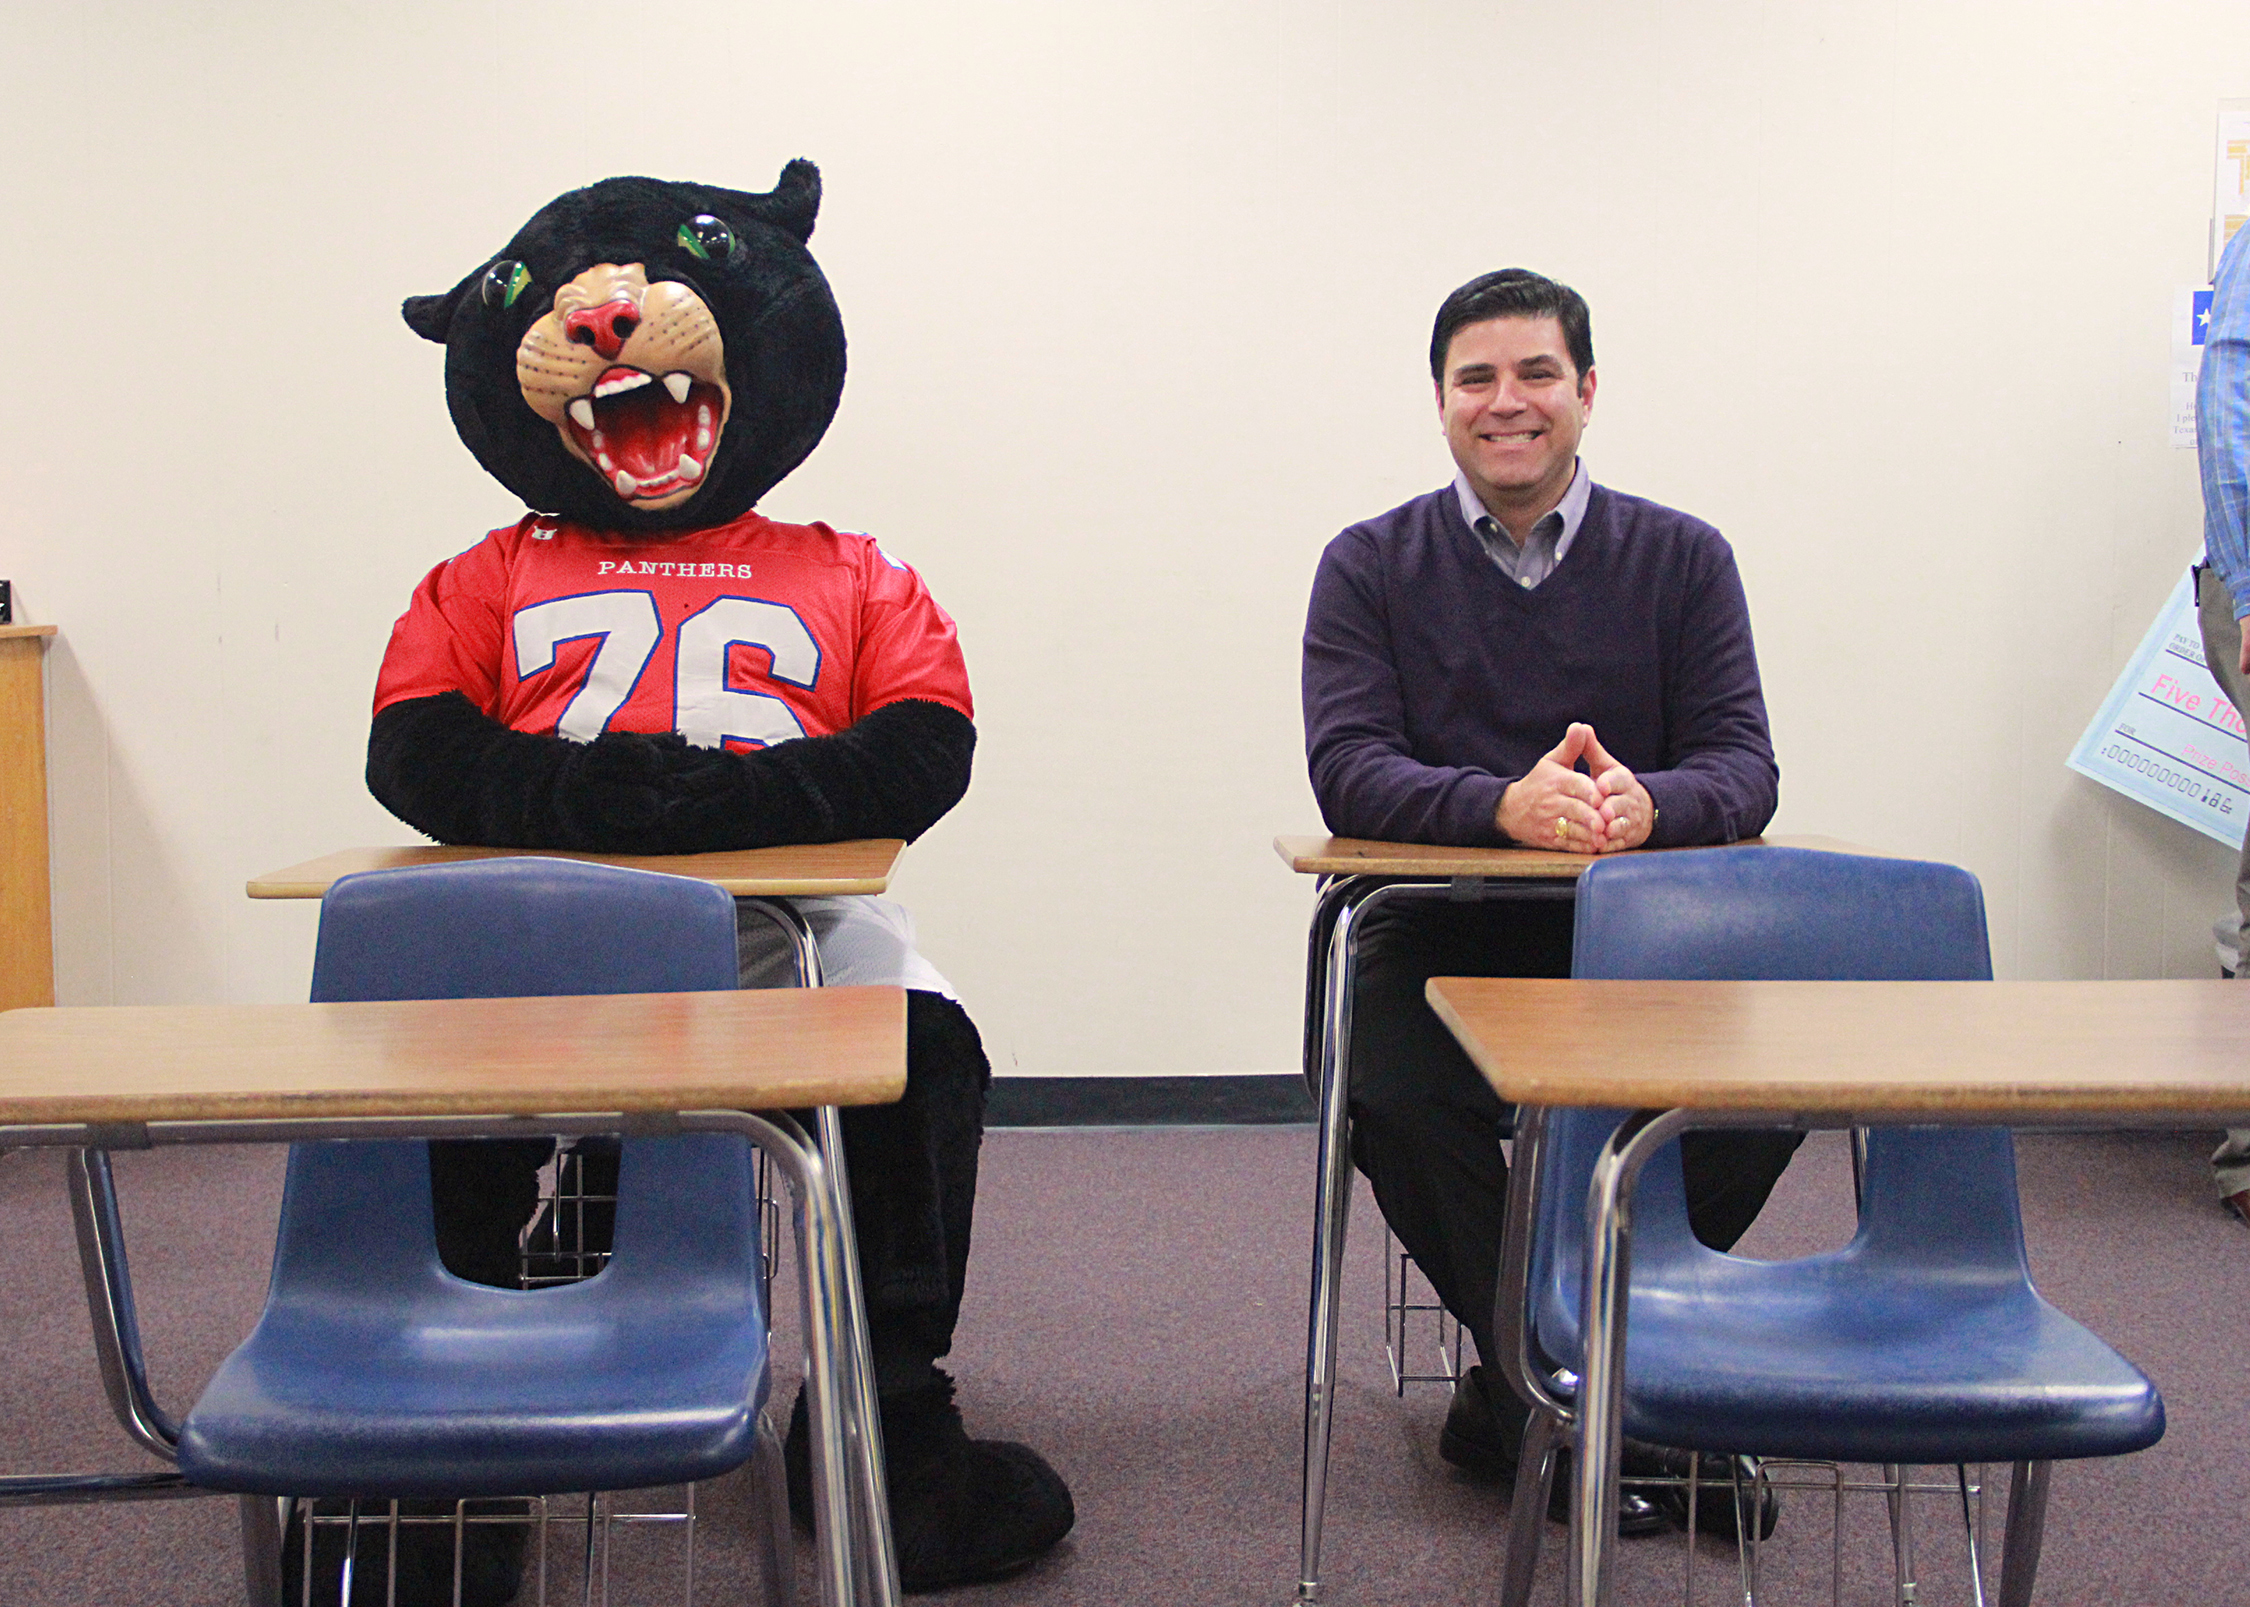 Dr. George Kazanas sitting in a desk next to the Midway Mascot at another desk to his right